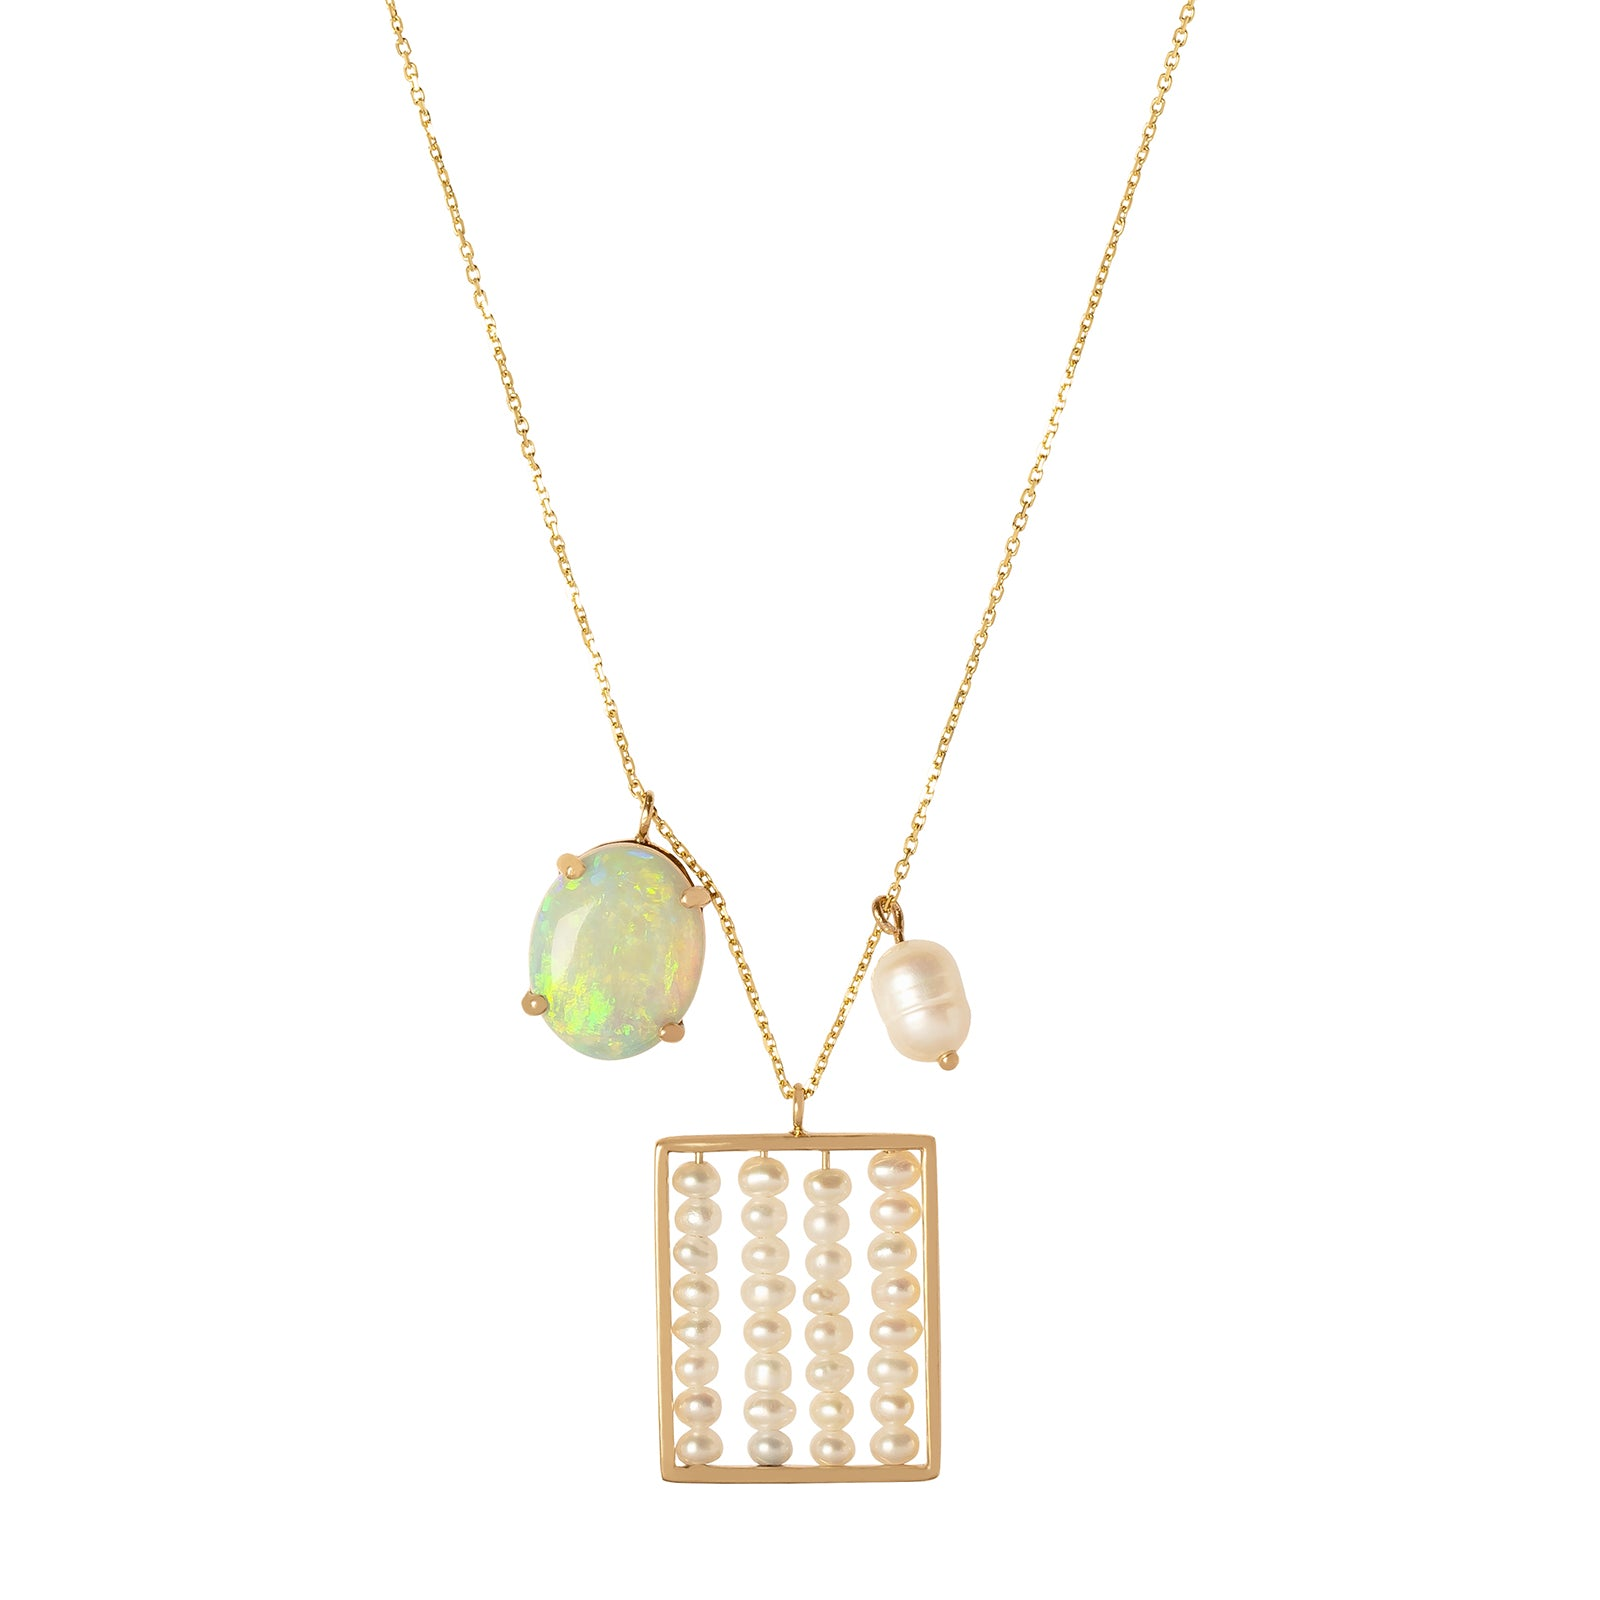 WWAKE Charm Necklace - Opal & Pearl - Necklaces - Broken English Jewelry